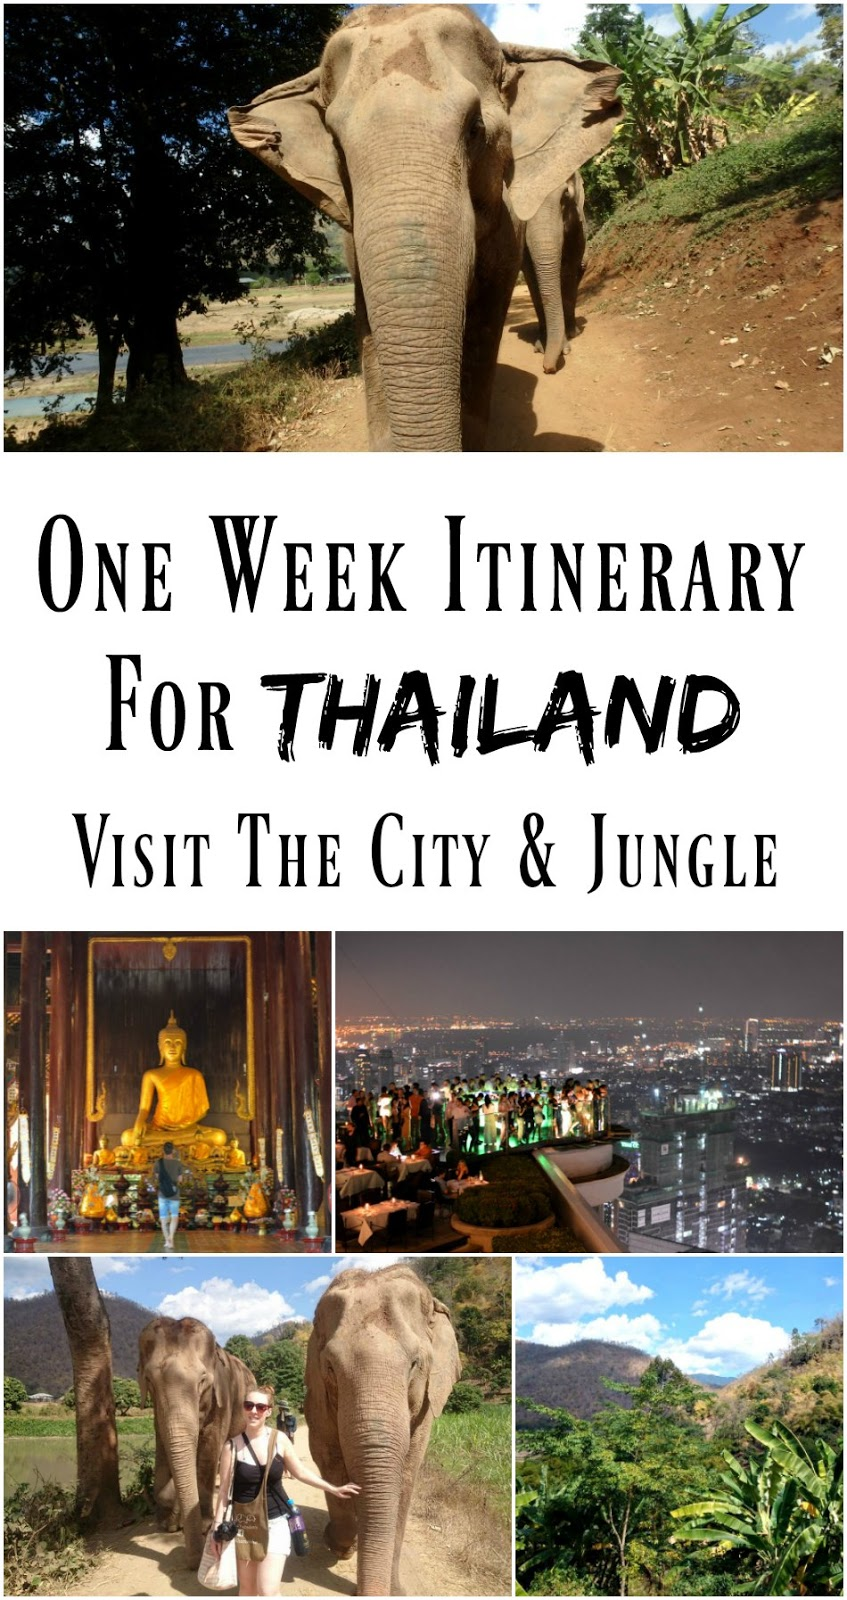 PIN FOR LATER: A one-week itinerary for Thailand! Visit Bangkok and Chiang Mai in one week, and see everything from the elephants to the beautiful Buddhist temples.